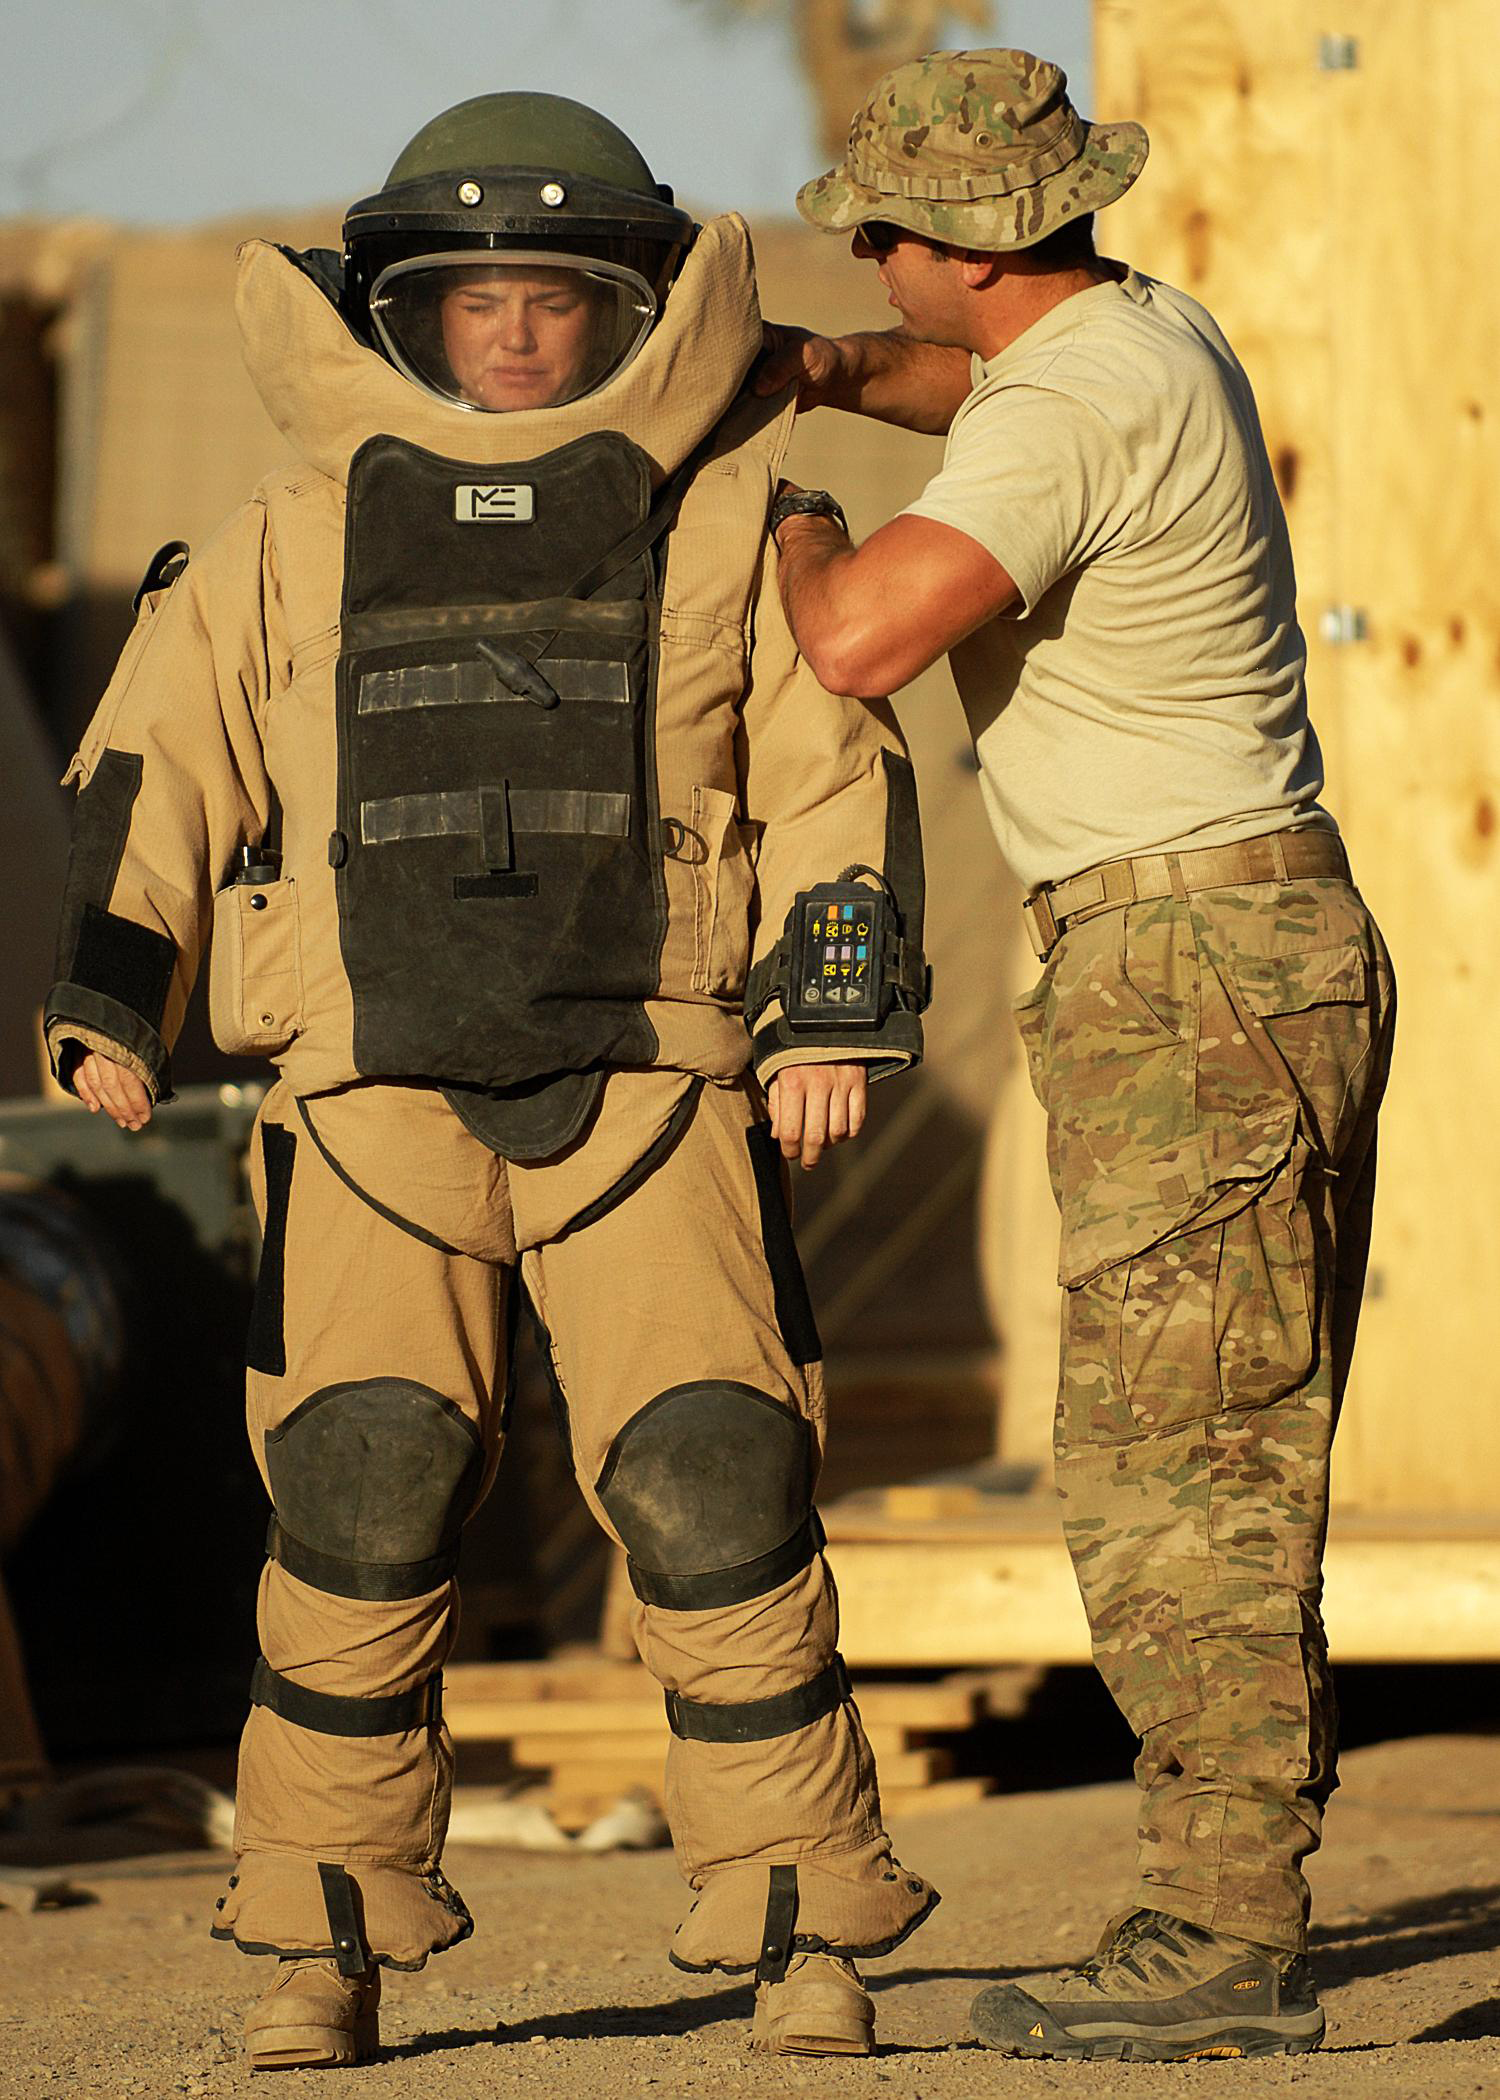 explosive ordnance disposal meaning